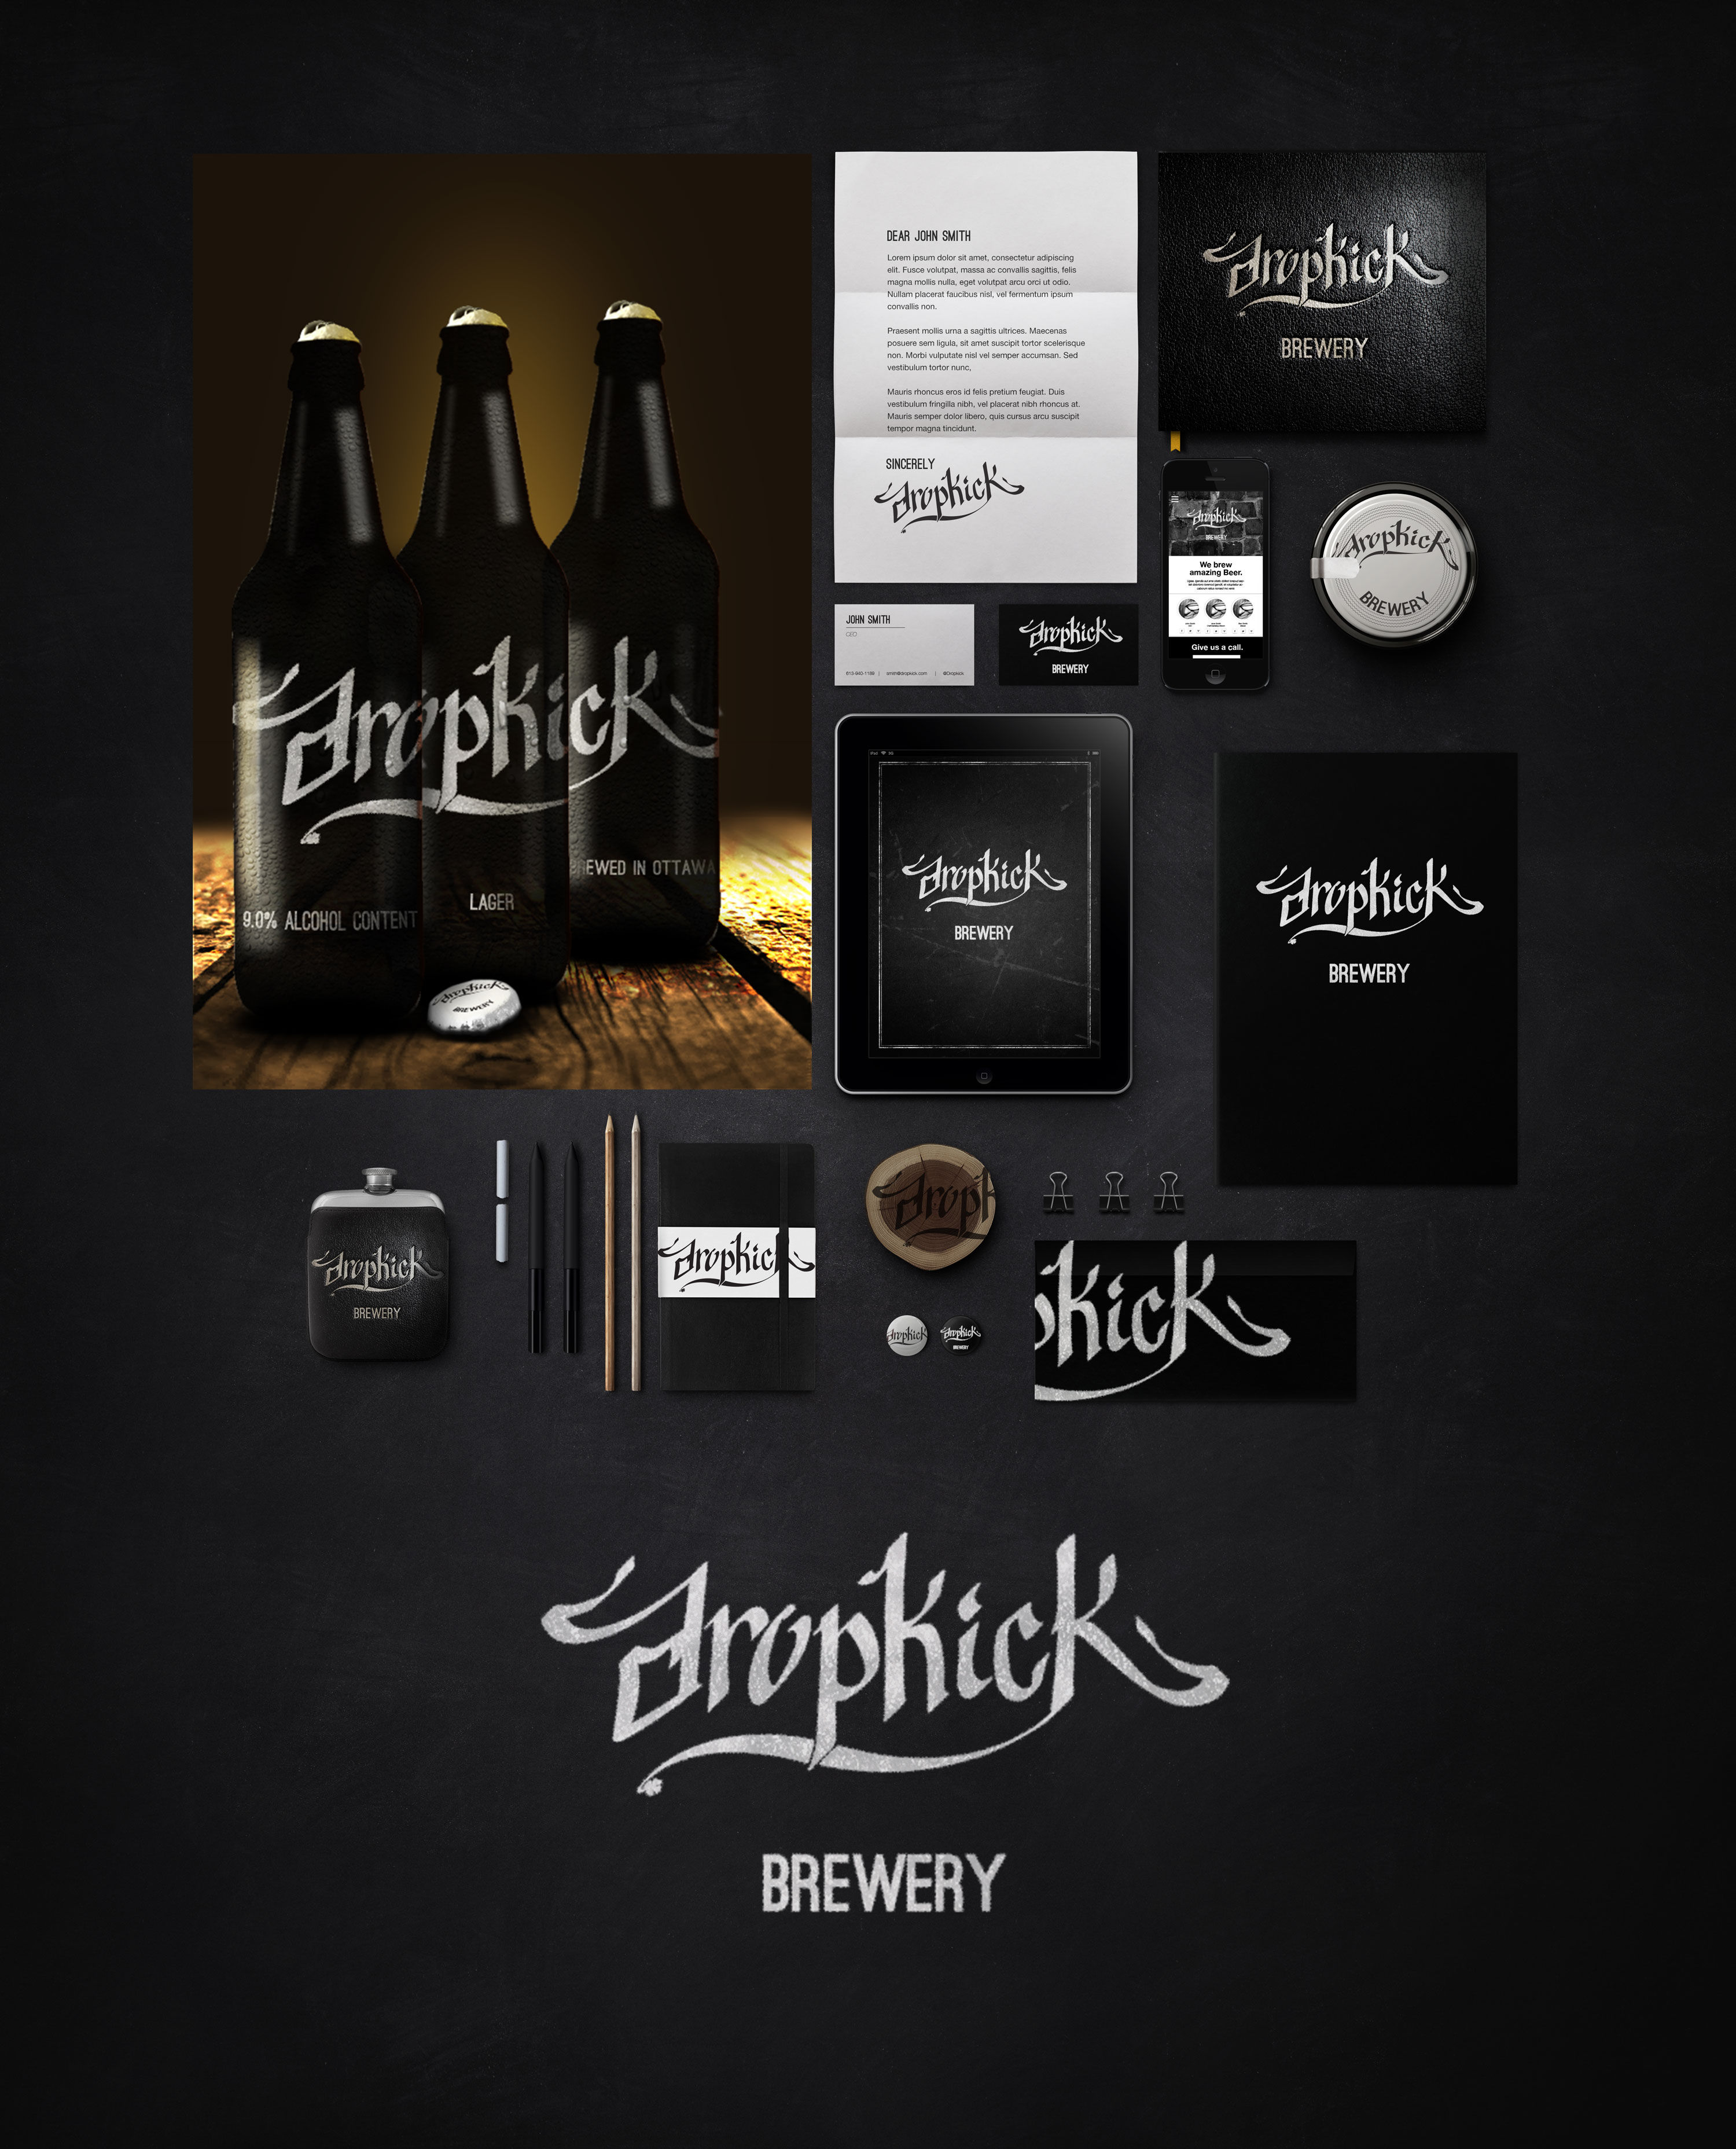 Brand package concept for Dropkick Brewery